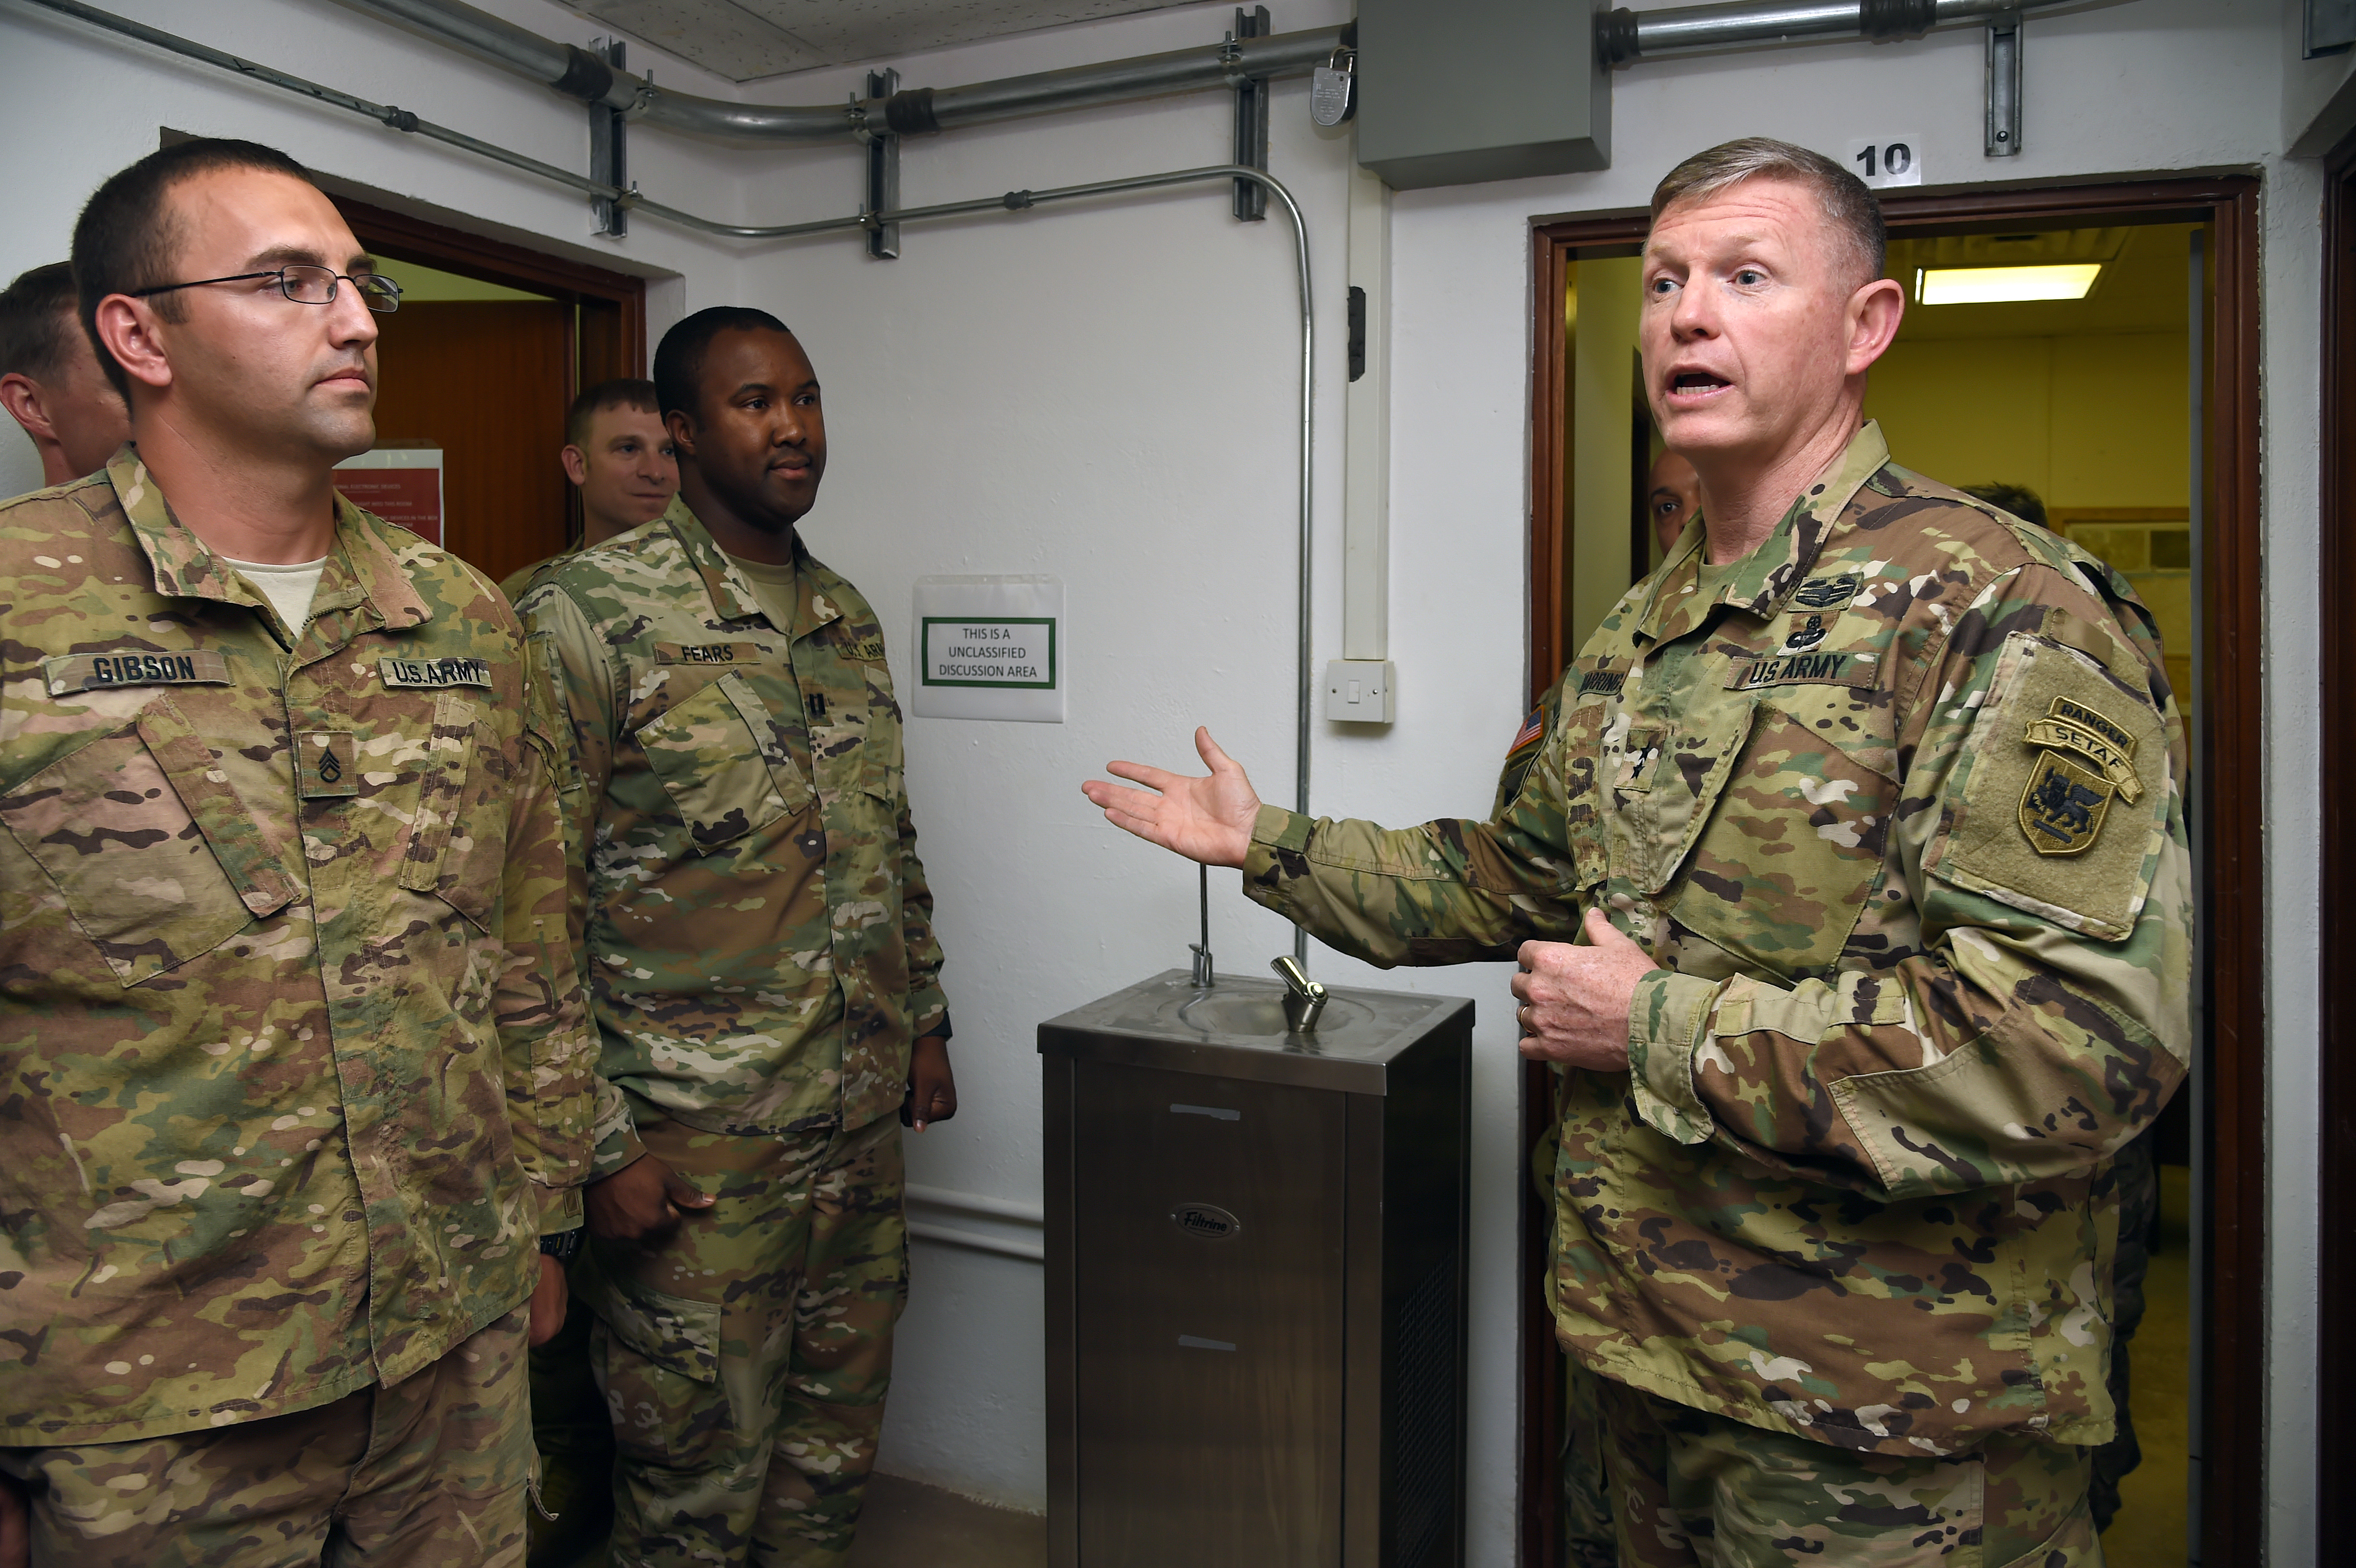 U.S. Army Maj. Gen. Joseph Harrington, commanding general of U.S. Army Africa (USARAF) addresses infantry and civil affairs Soldiers assigned to Combined Joint Task Force-Horn of Africa at Camp Lemonnier, Djibouti, March 22, 2017. USARAF provides mission command and employs forces to set the theater, conduct security force assistance, and provide support to joint and international partners in order to achieve U.S. Africa Command theater campaign plan objectives. (U.S. Air National Guard photo by Master Sgt. Paul Gorman)